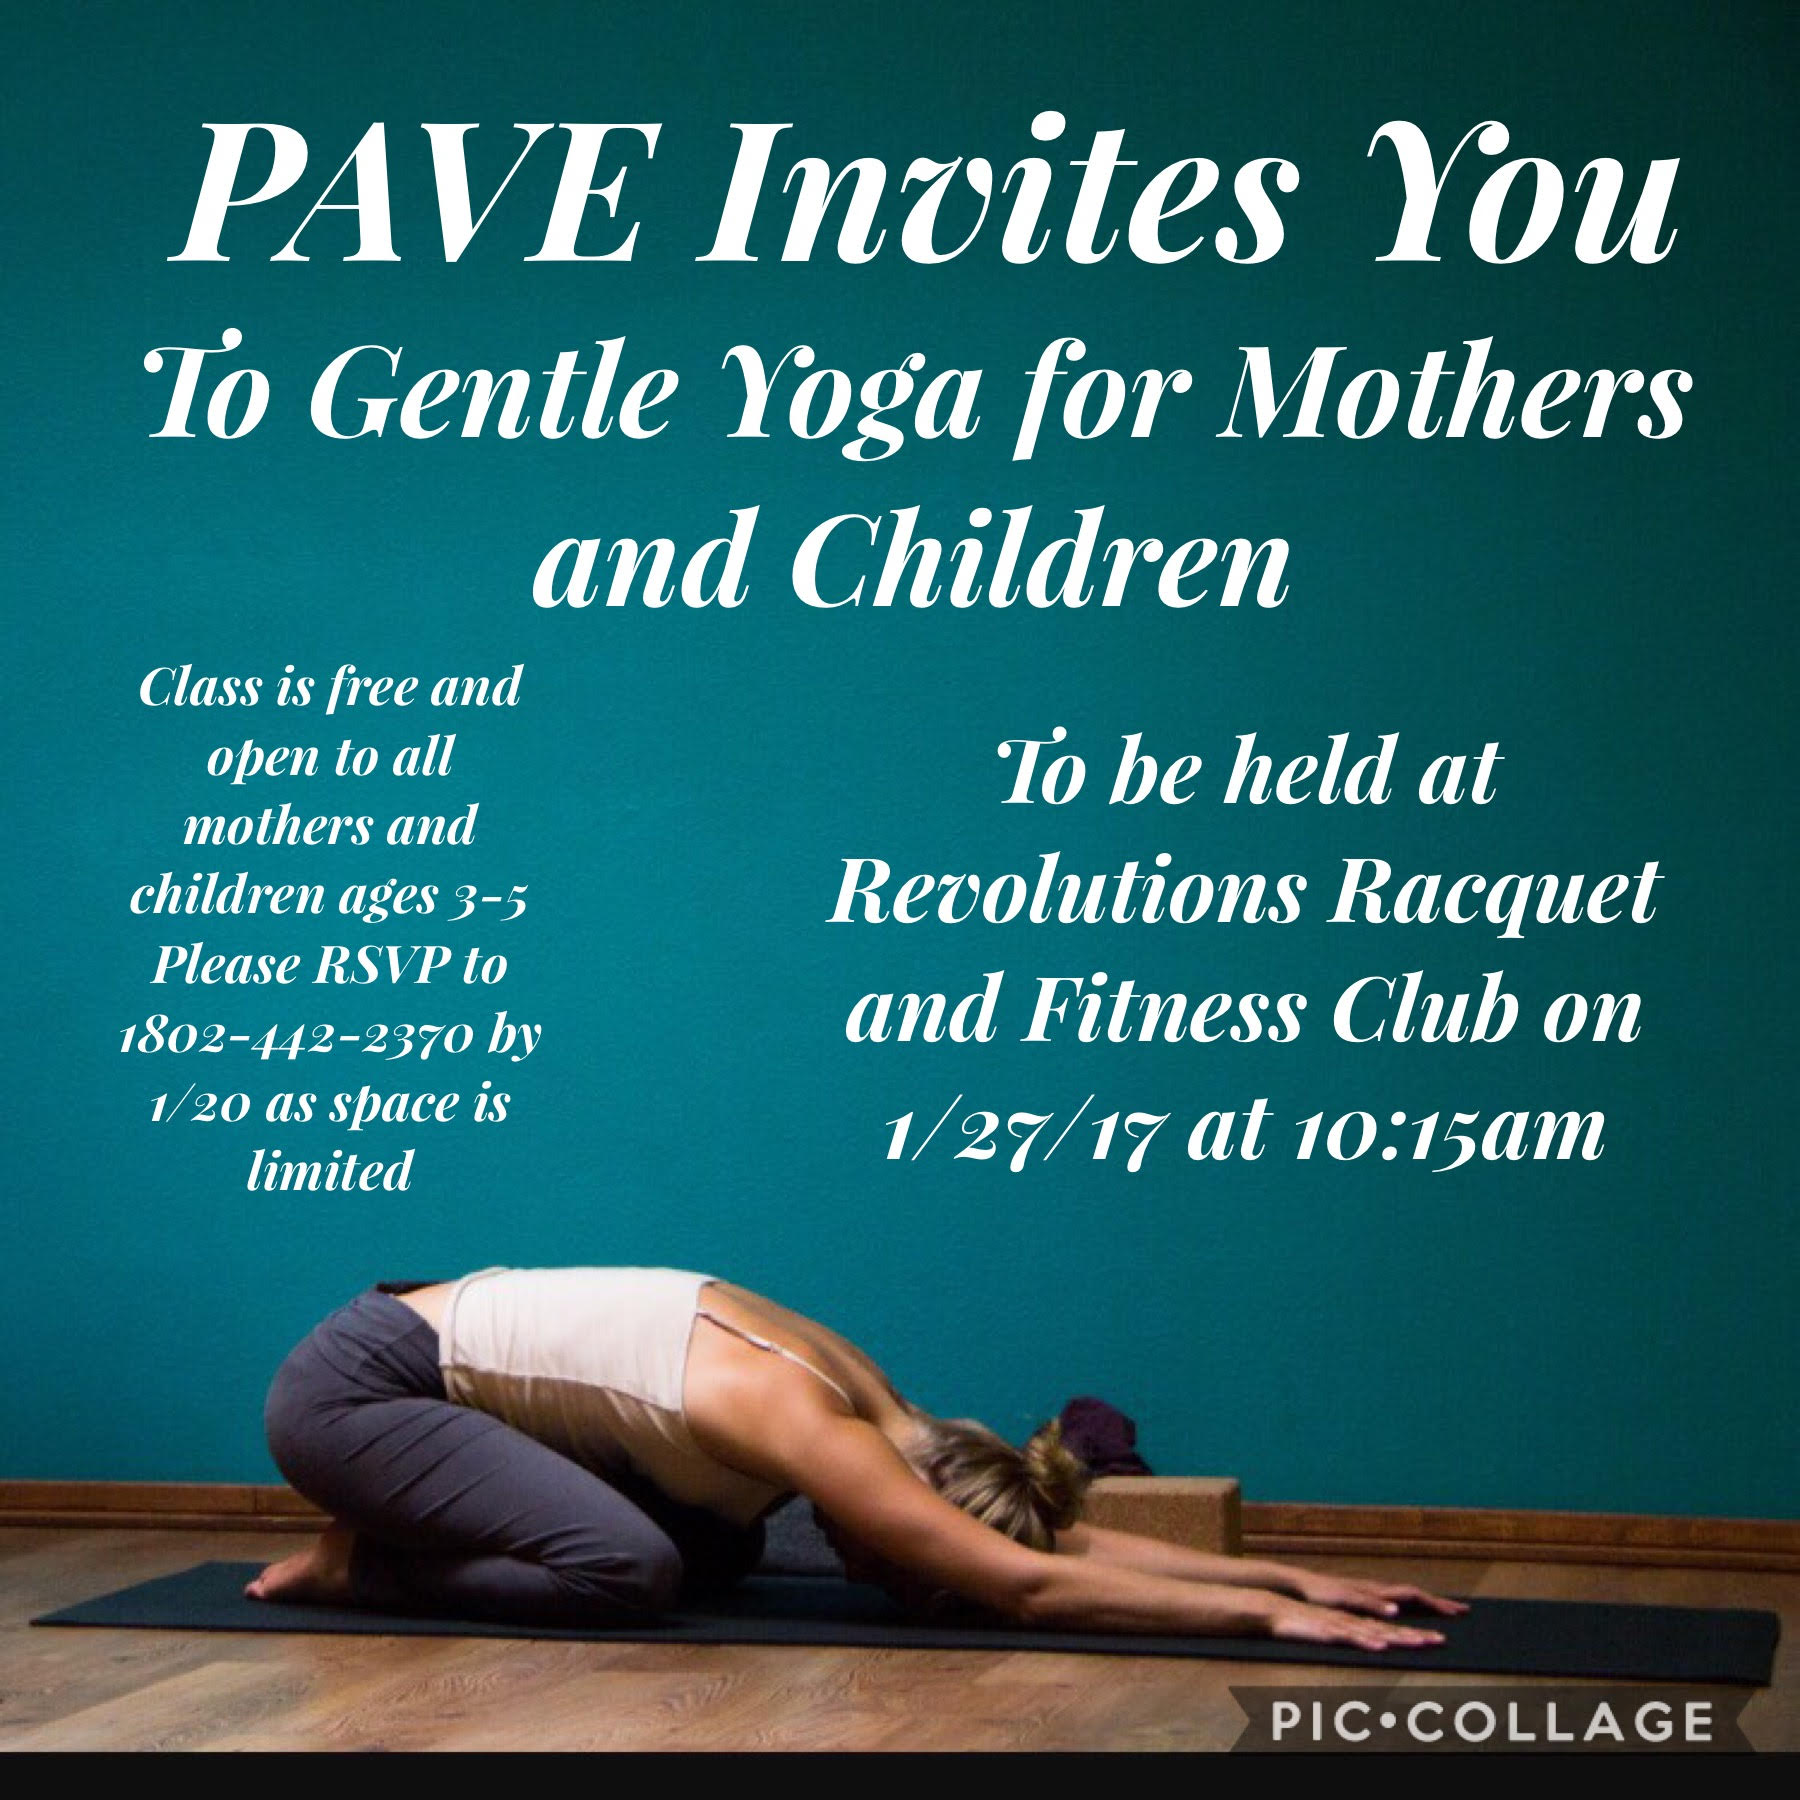 Gentle Yoga For Mothers and Children!